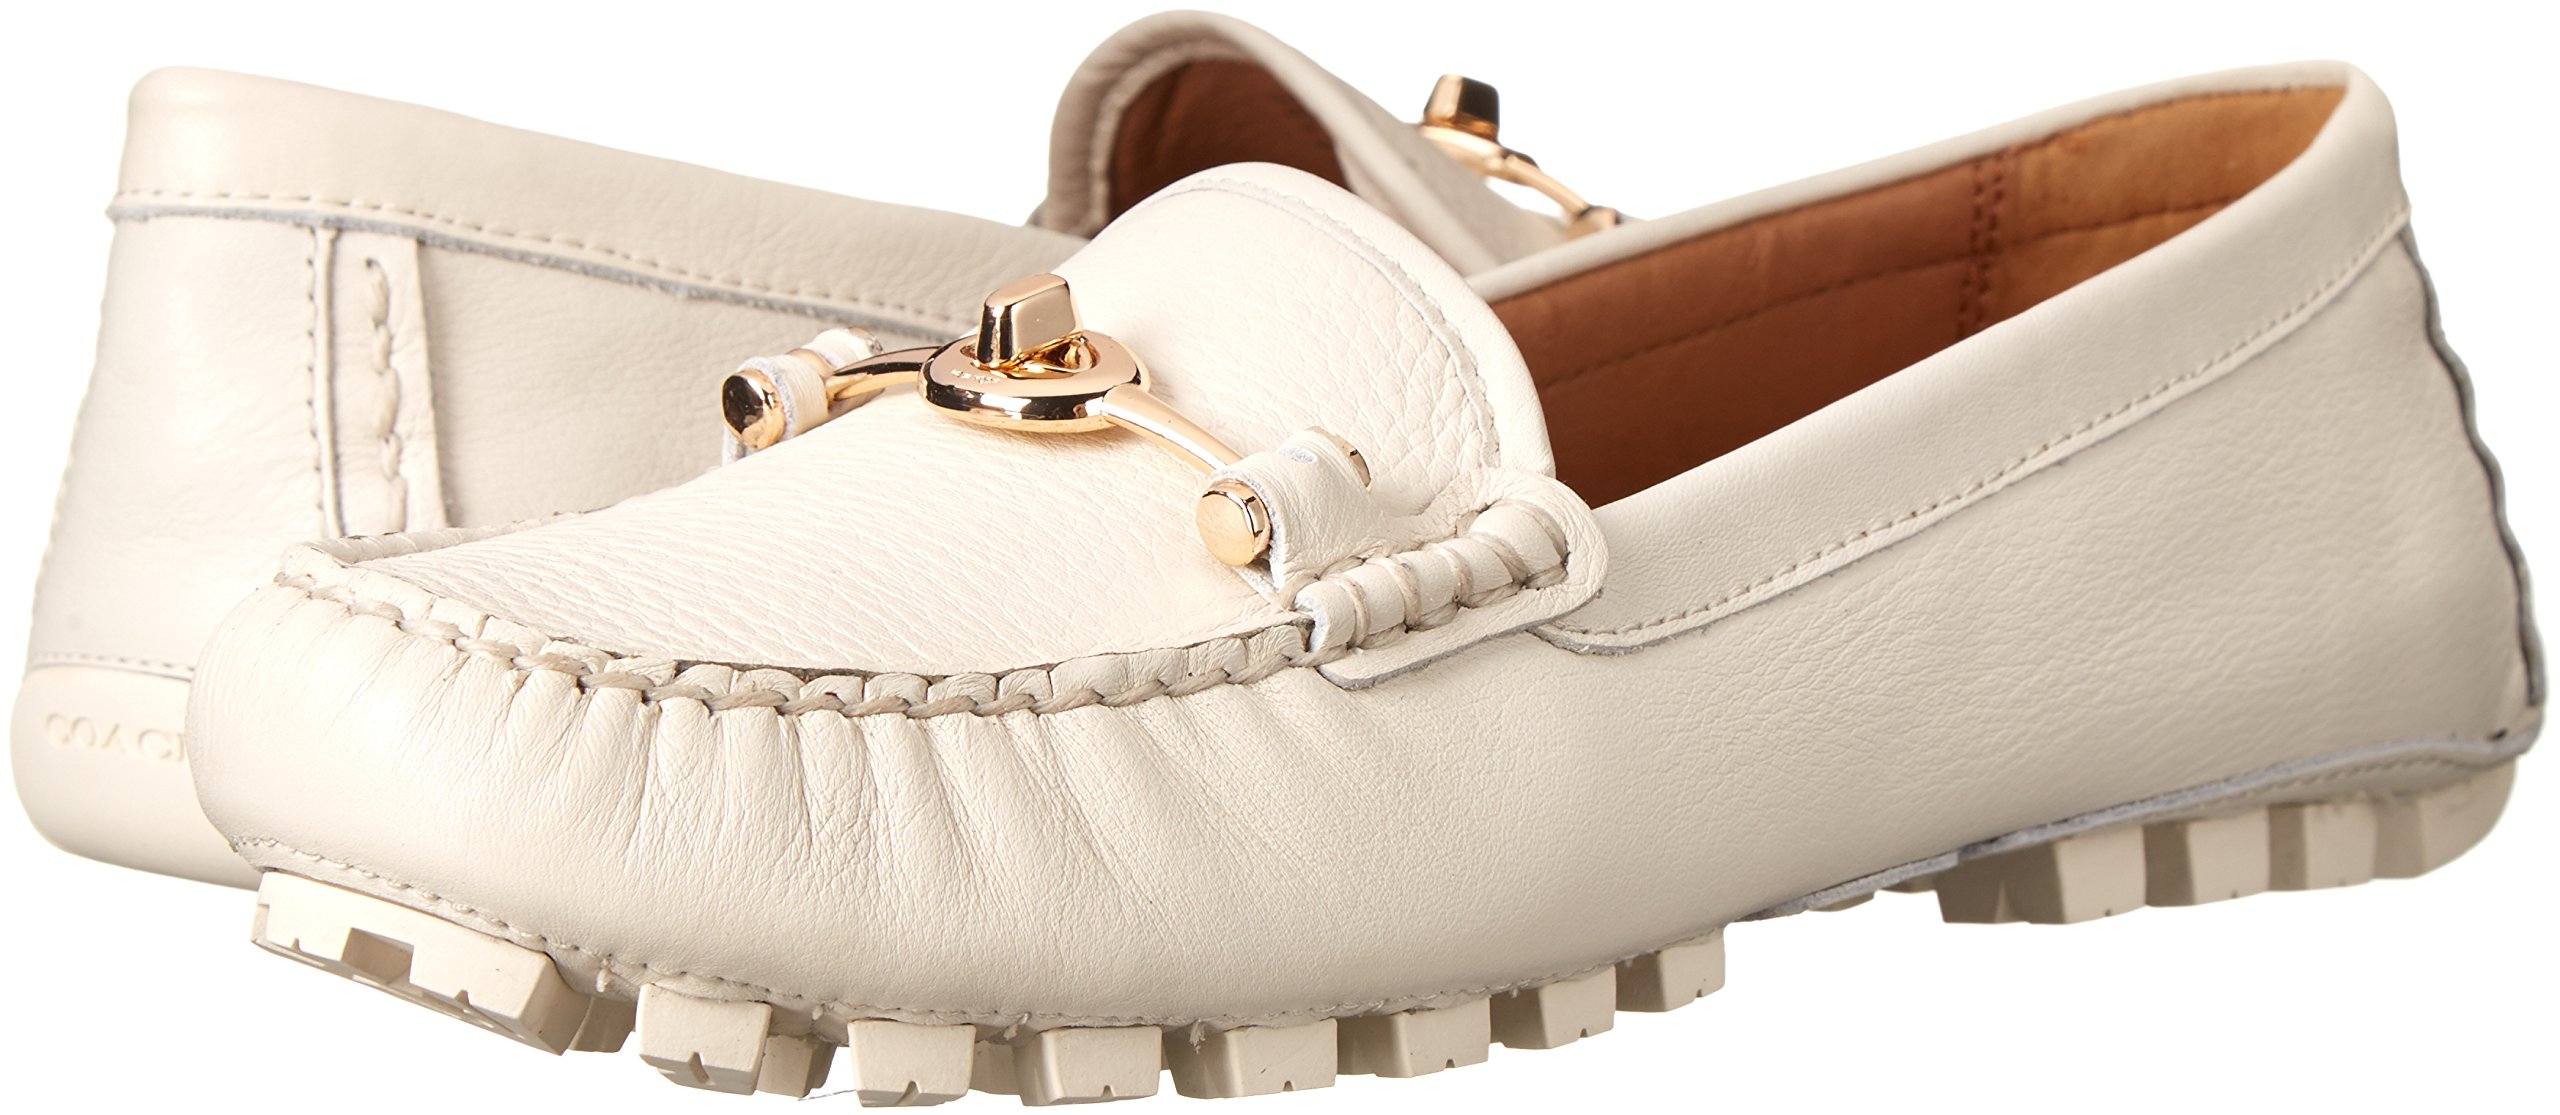 COACH Women's Arlene Chalk Pebble Grain Leather Flat by Coach (Image #6)